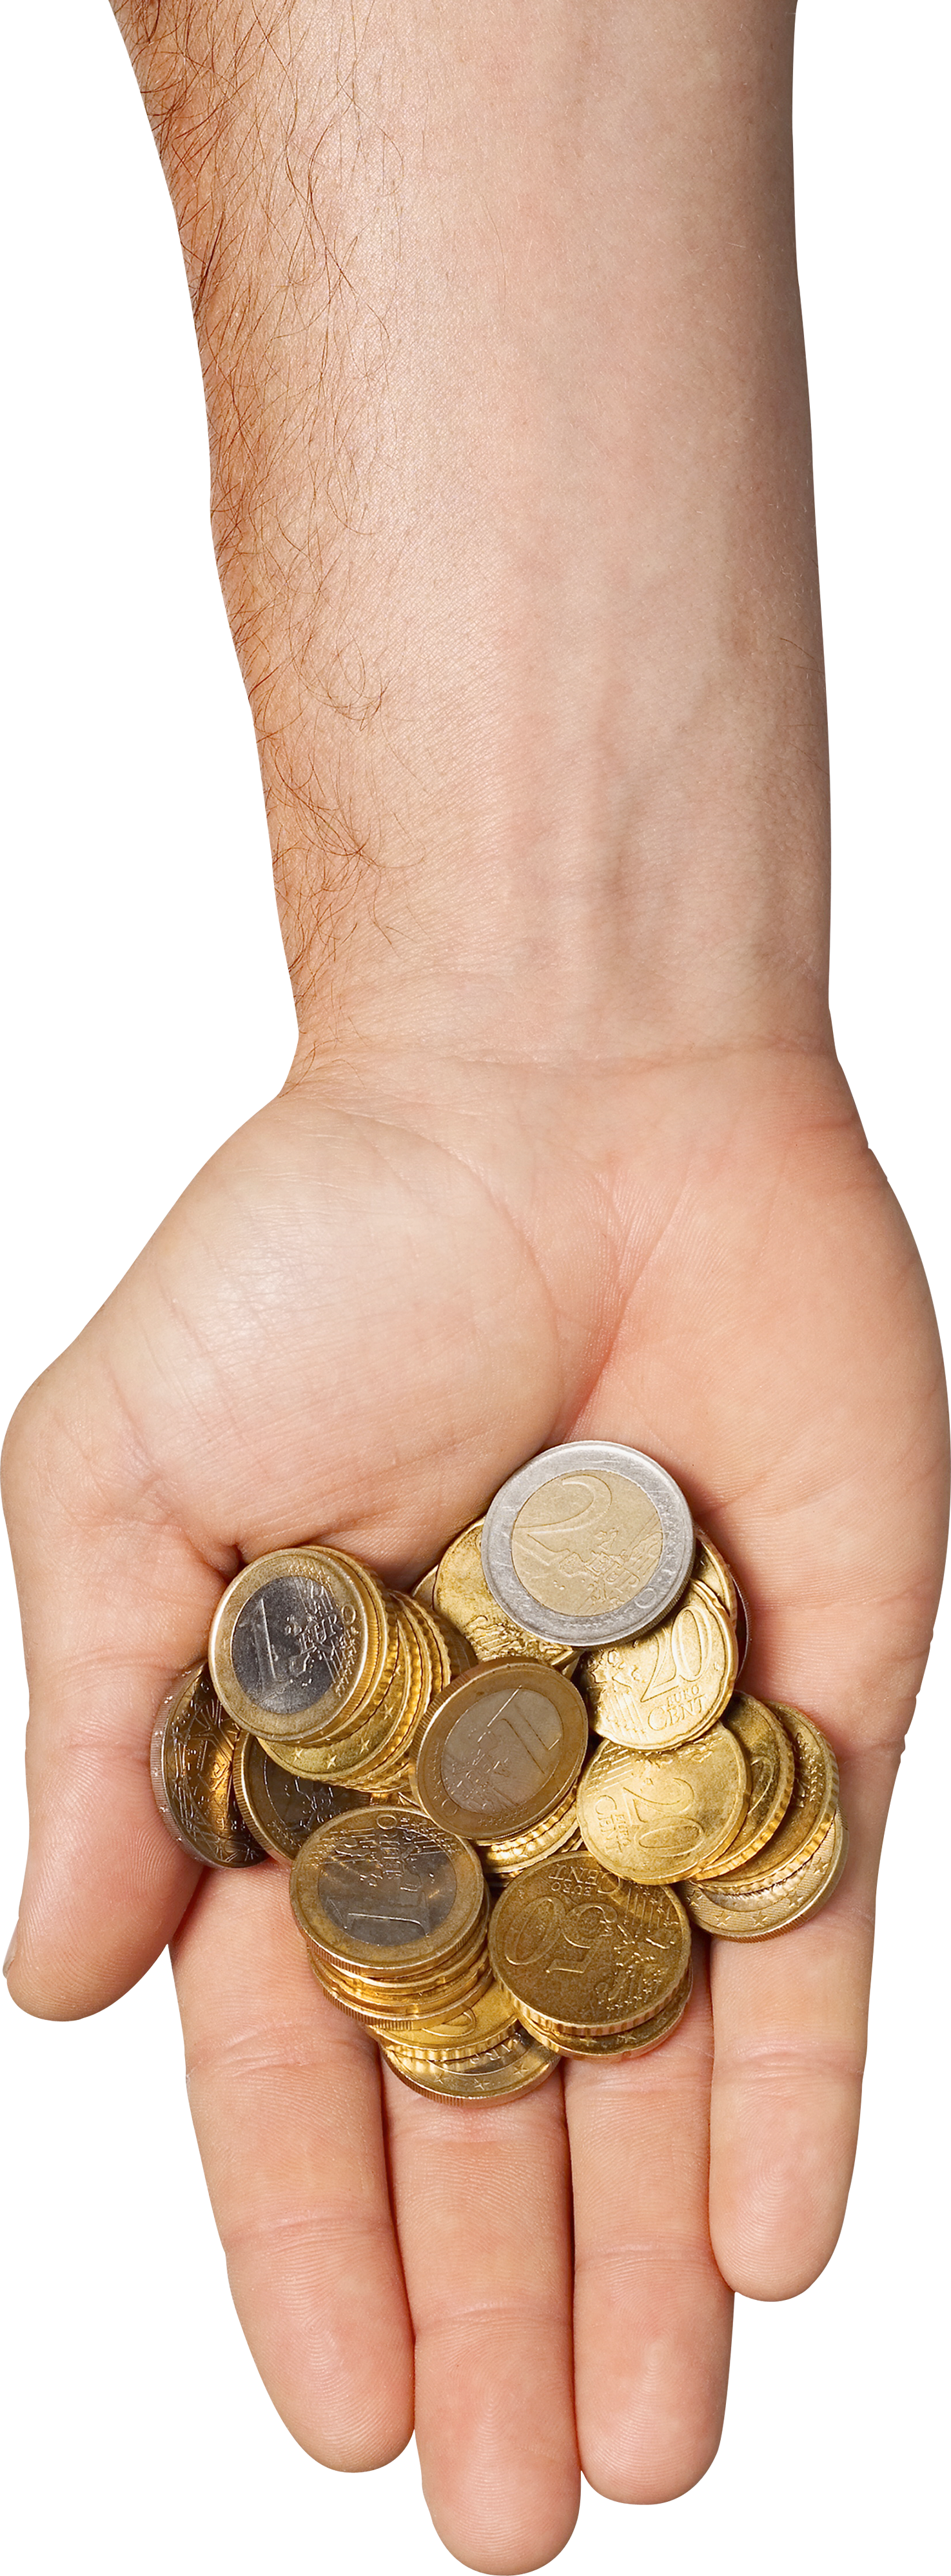 Money in hand PNG image